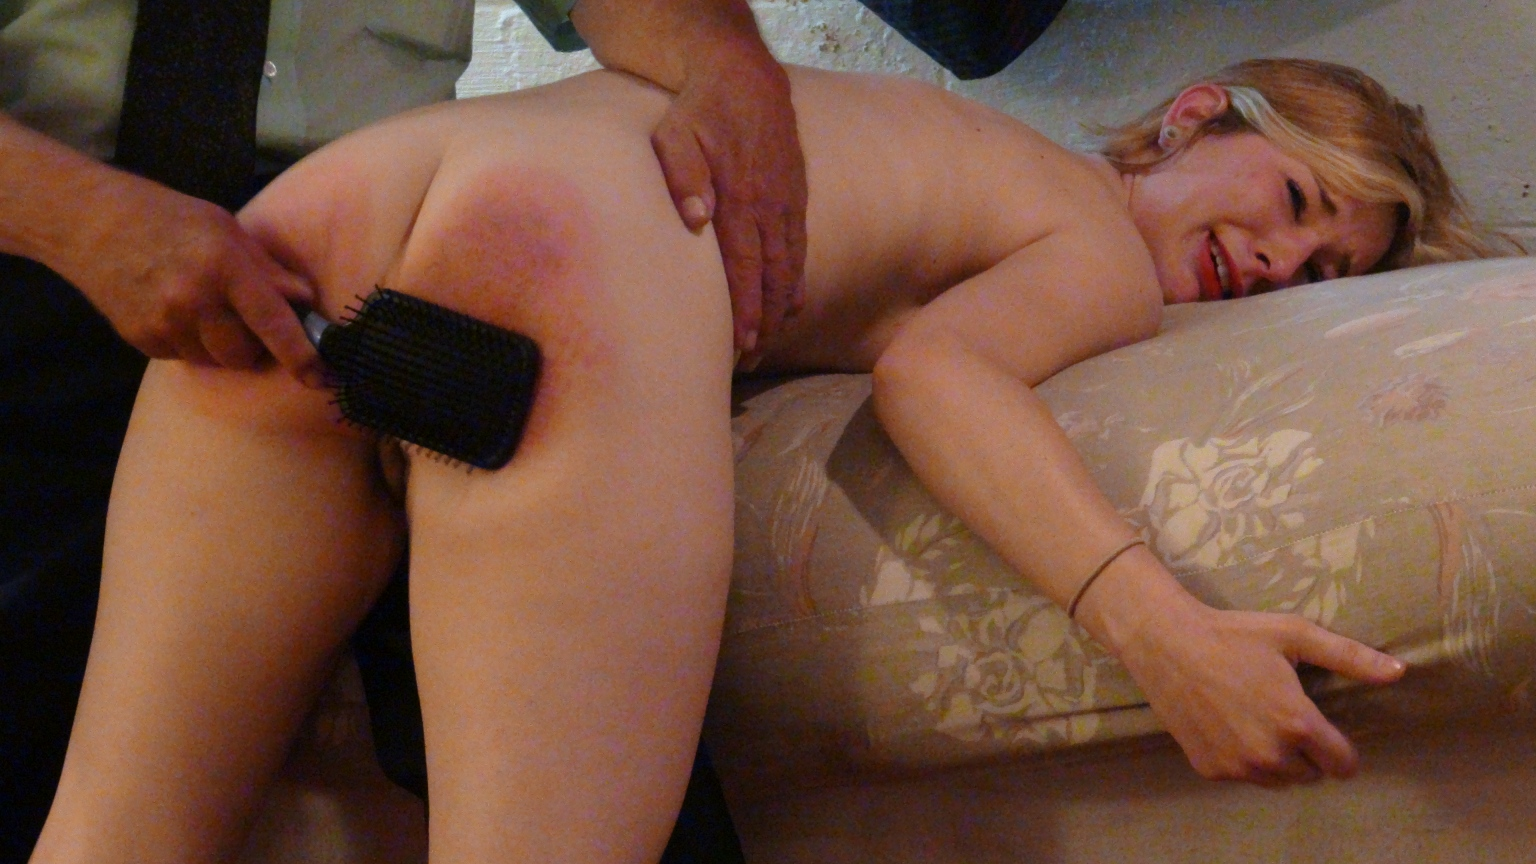 Spanked 18 year old girls porn join. All